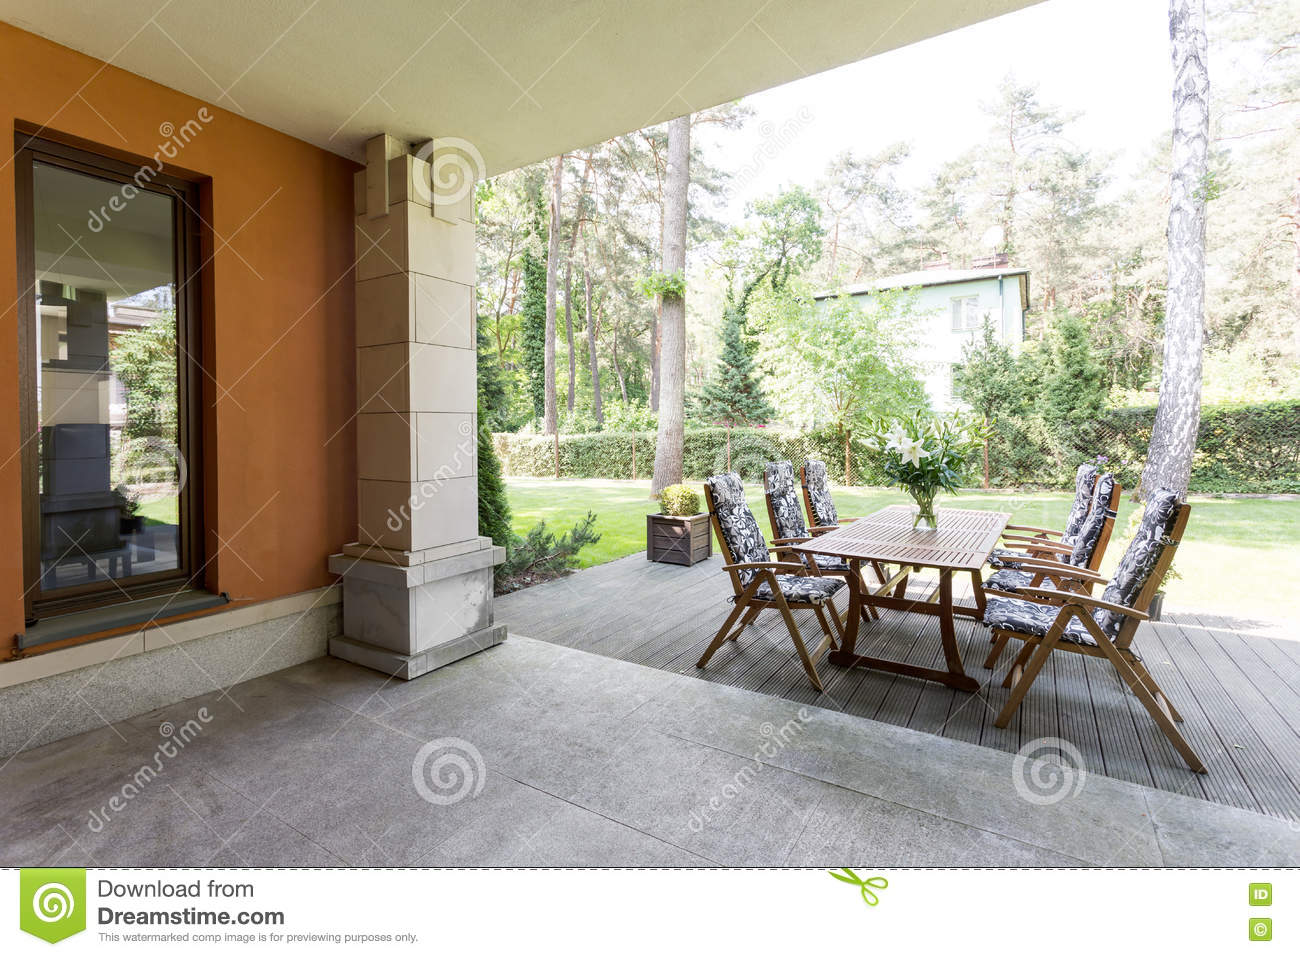 Veranda Dreams Veranda With Wooden Table And Chairs Stock Image Image Of Living